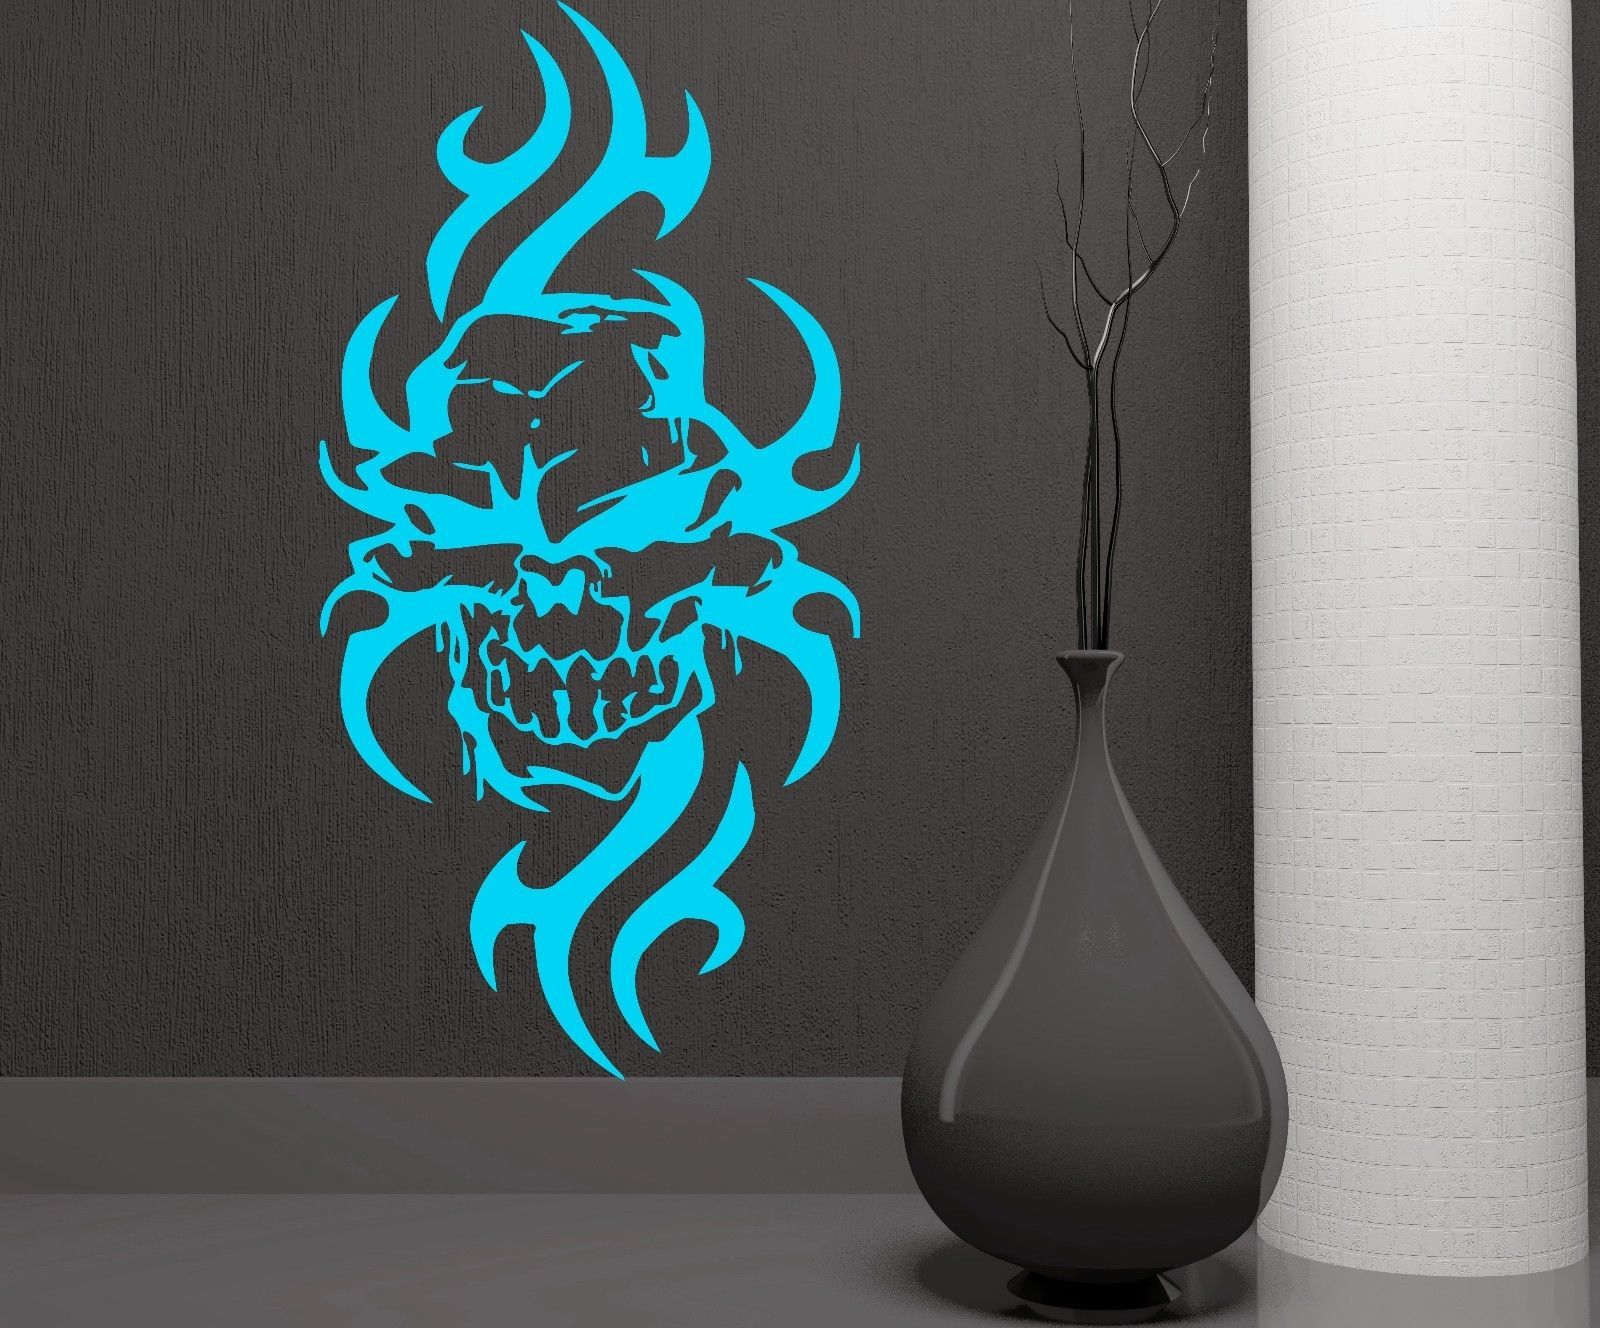 Vinyl decal wall sticker skull flames gothic art biker auto garage decor m173